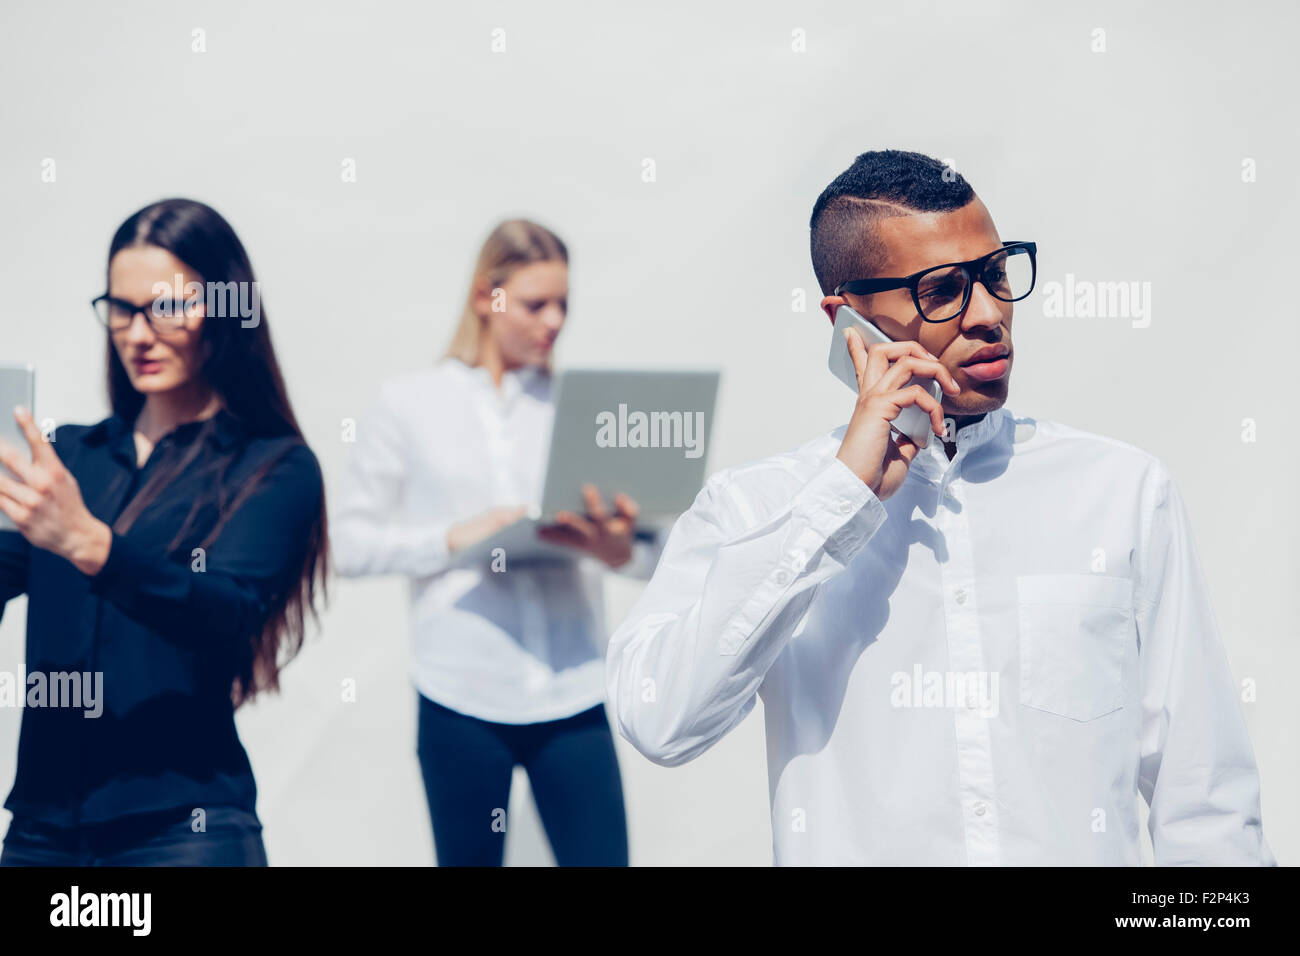 Young man telephoning with smartphone in front of two other people - Stock Image